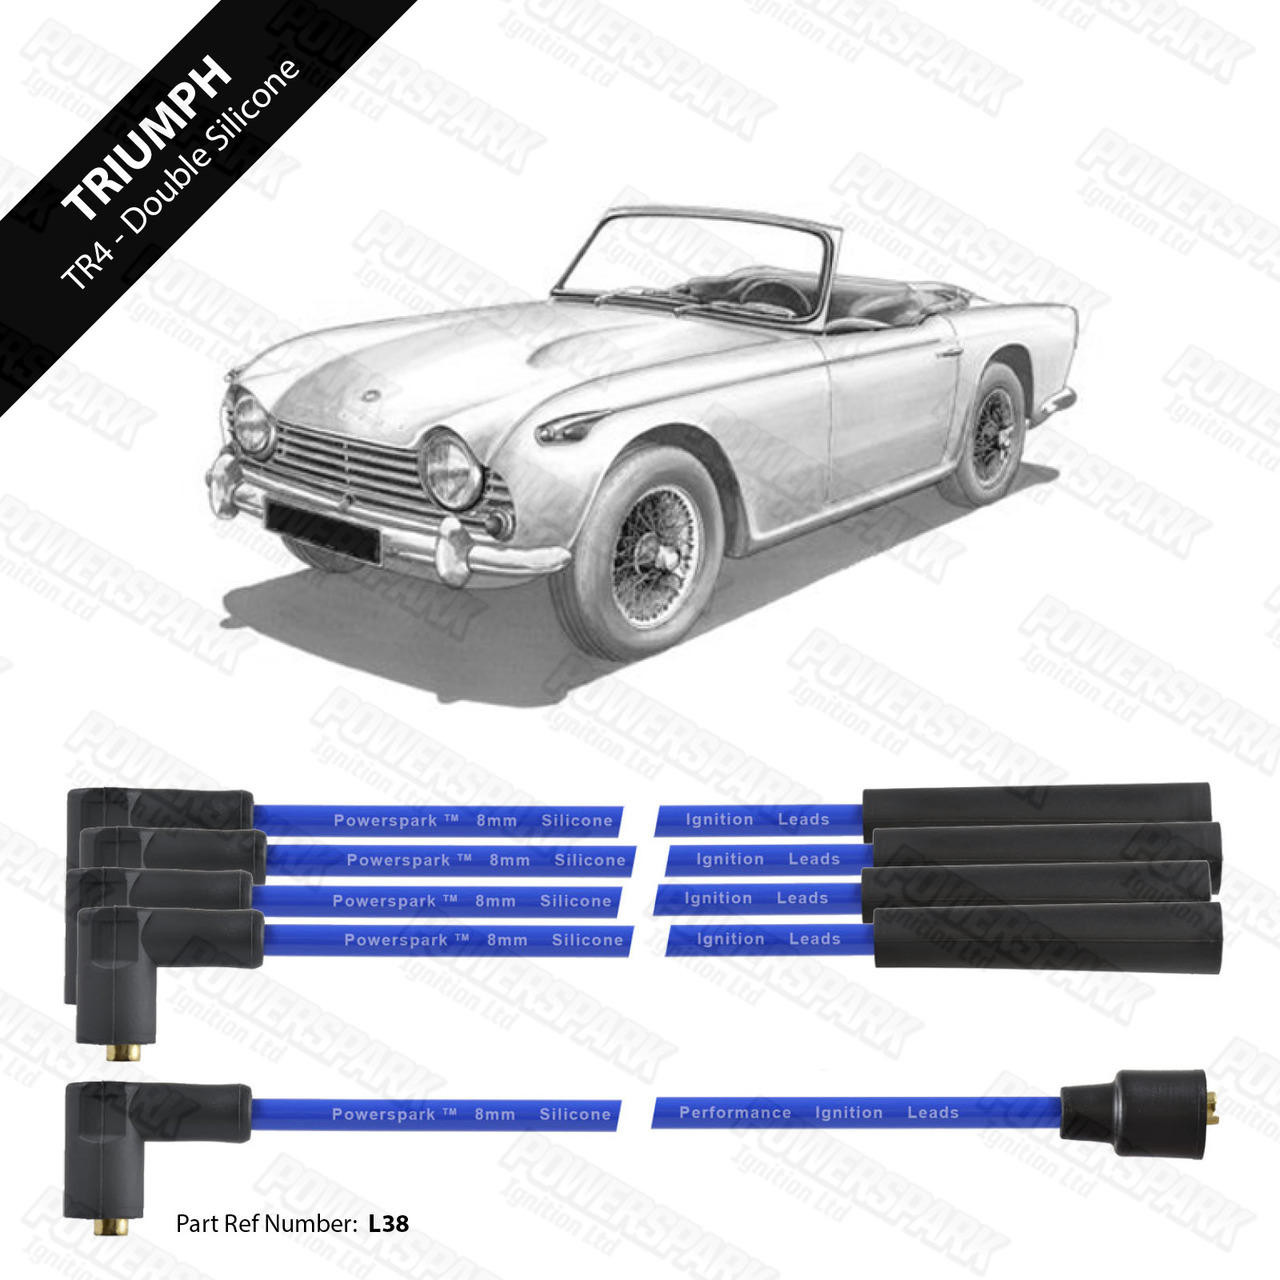 Powerspark Triumph TR2 / TR3 / TR4 and Triumph Engined Morgan Plus4 HT Leads 8mm Double Silicone